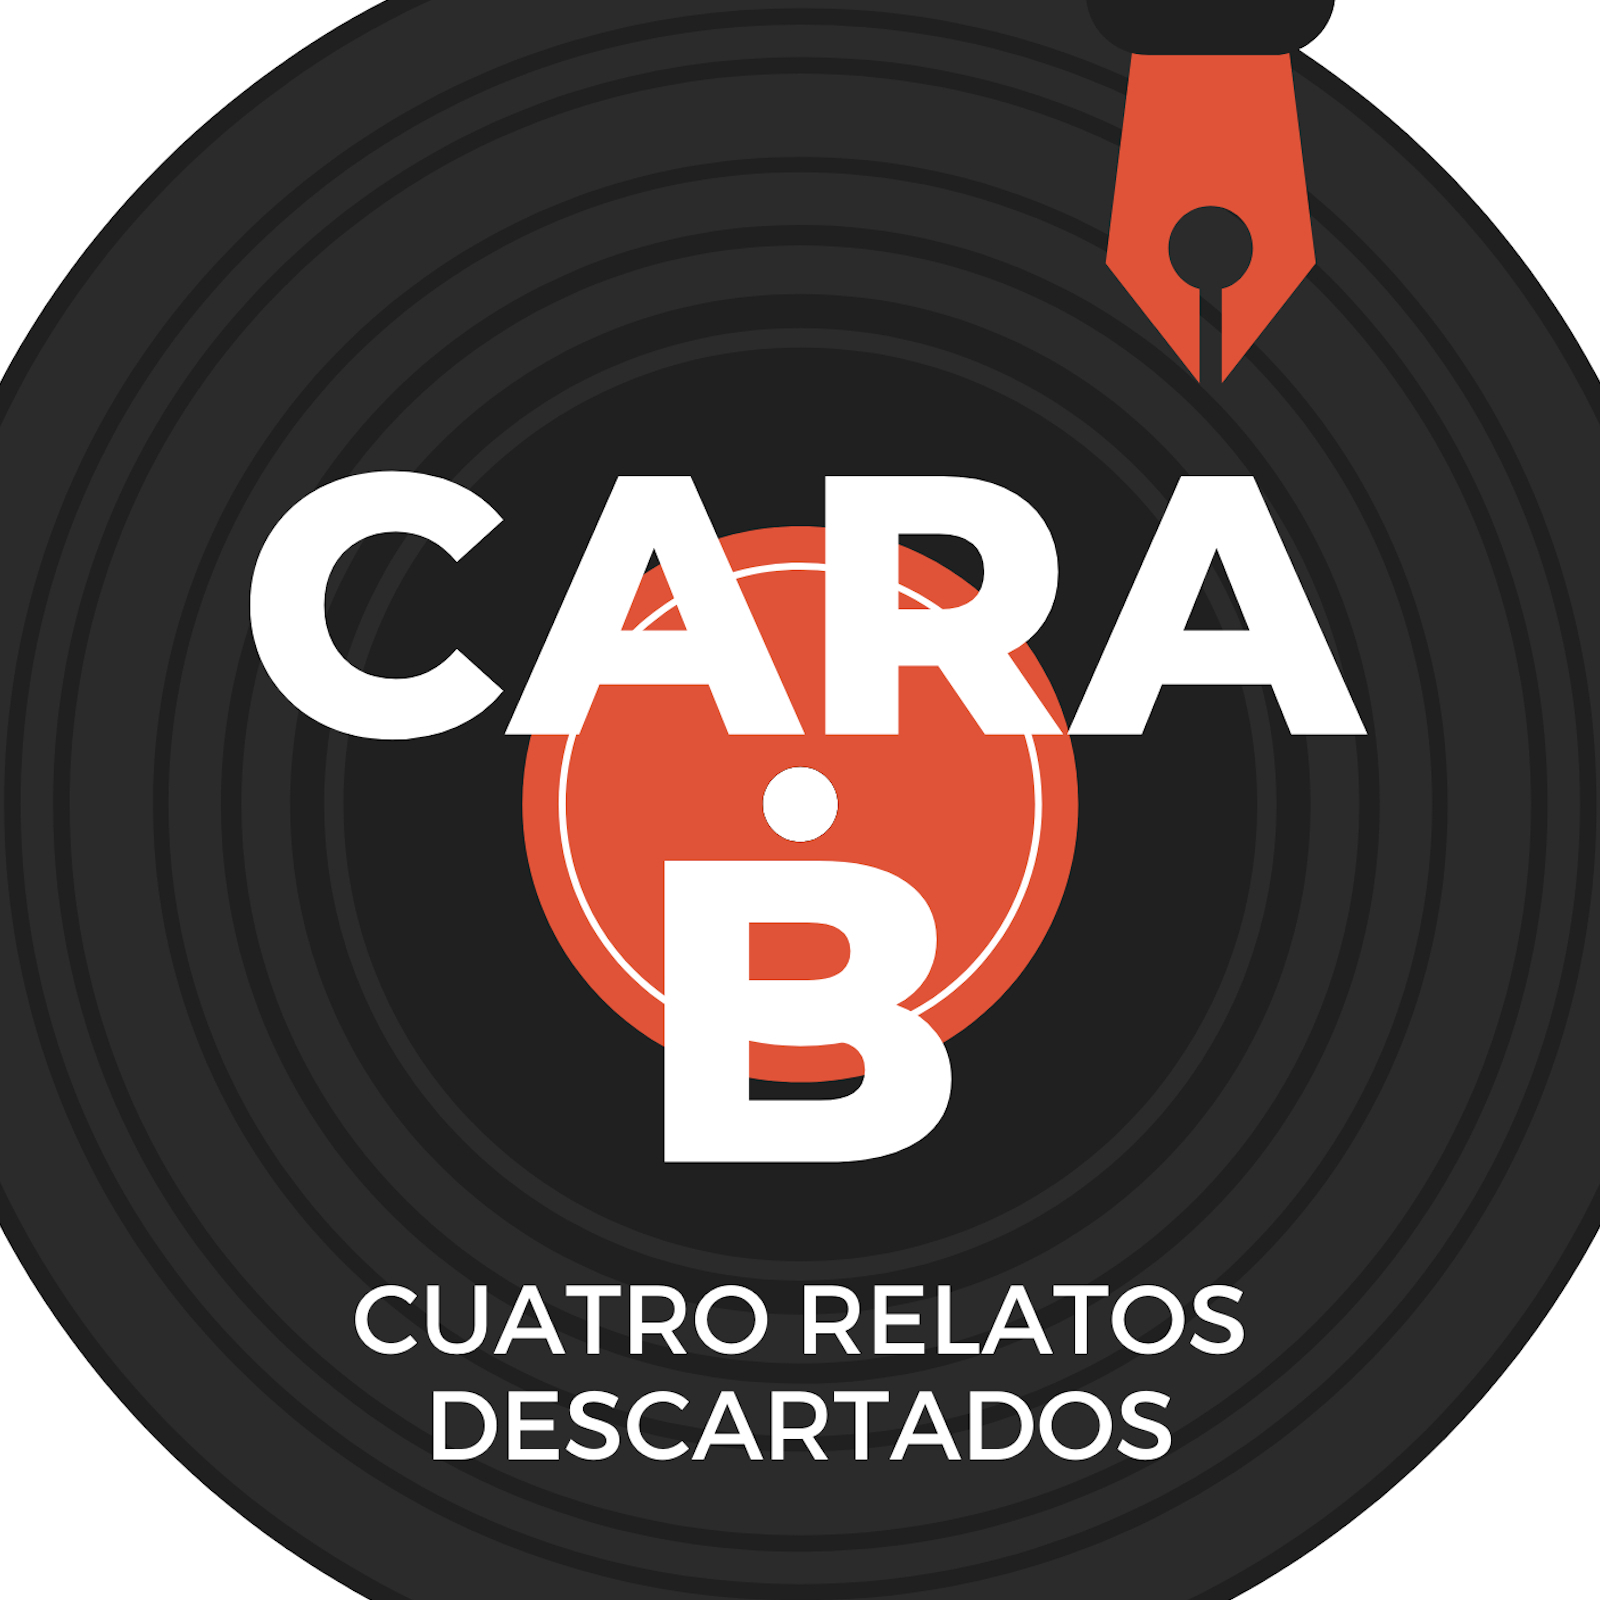 Cara B - Cuatro relatos descartados